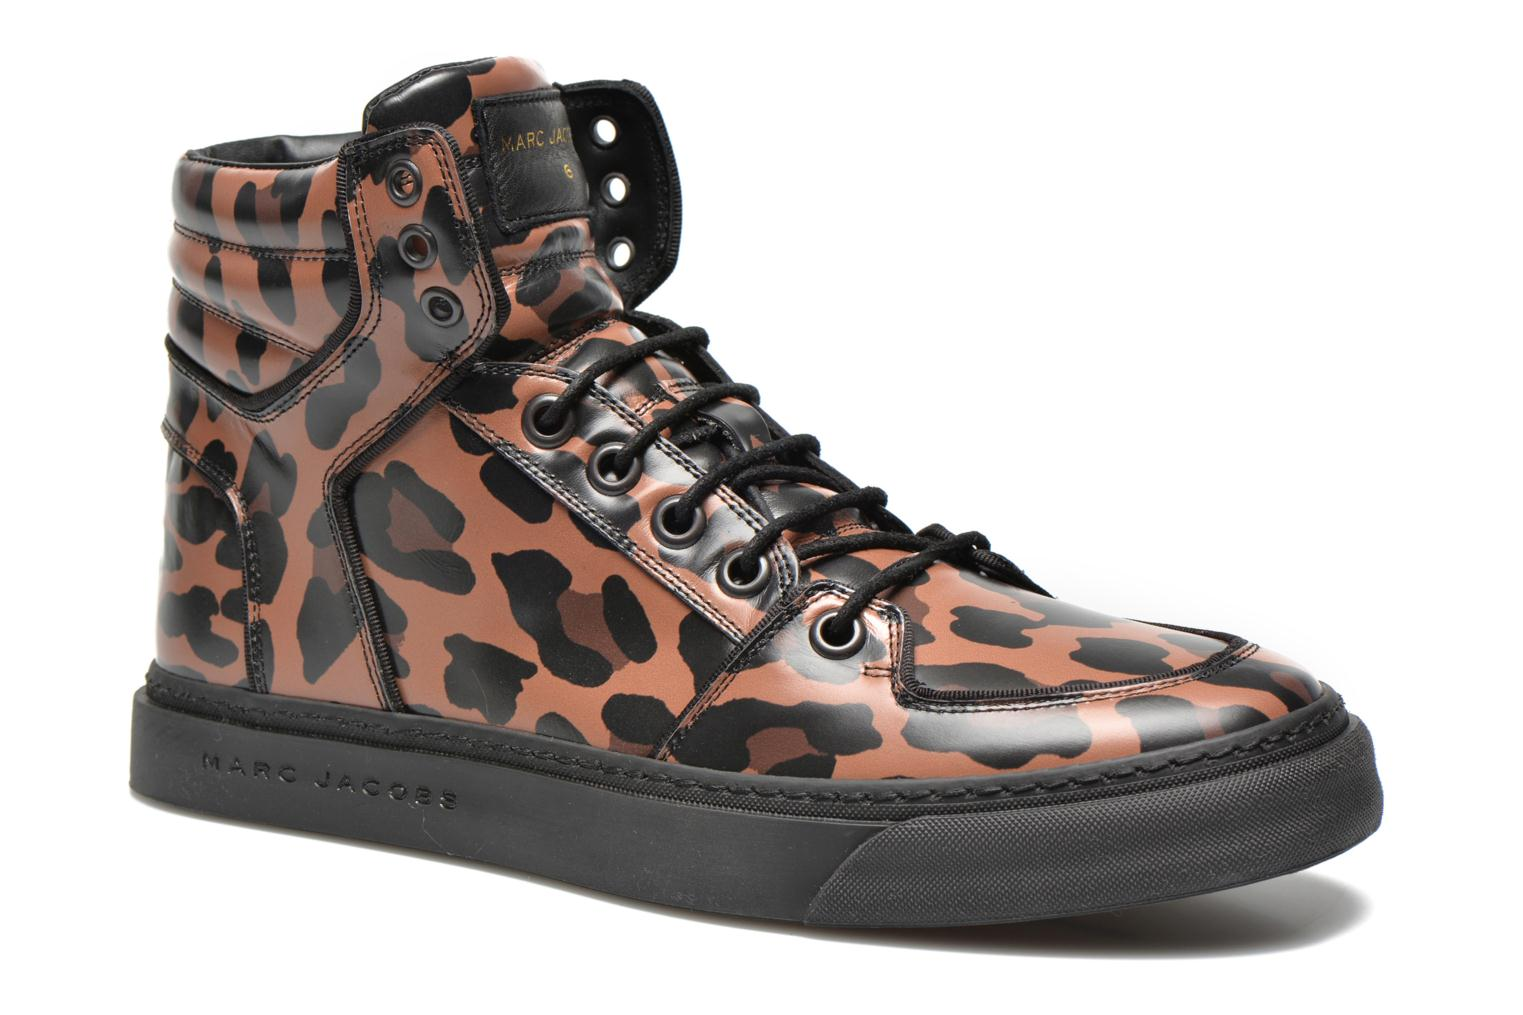 Sneakers Flash by Marc Jacobs